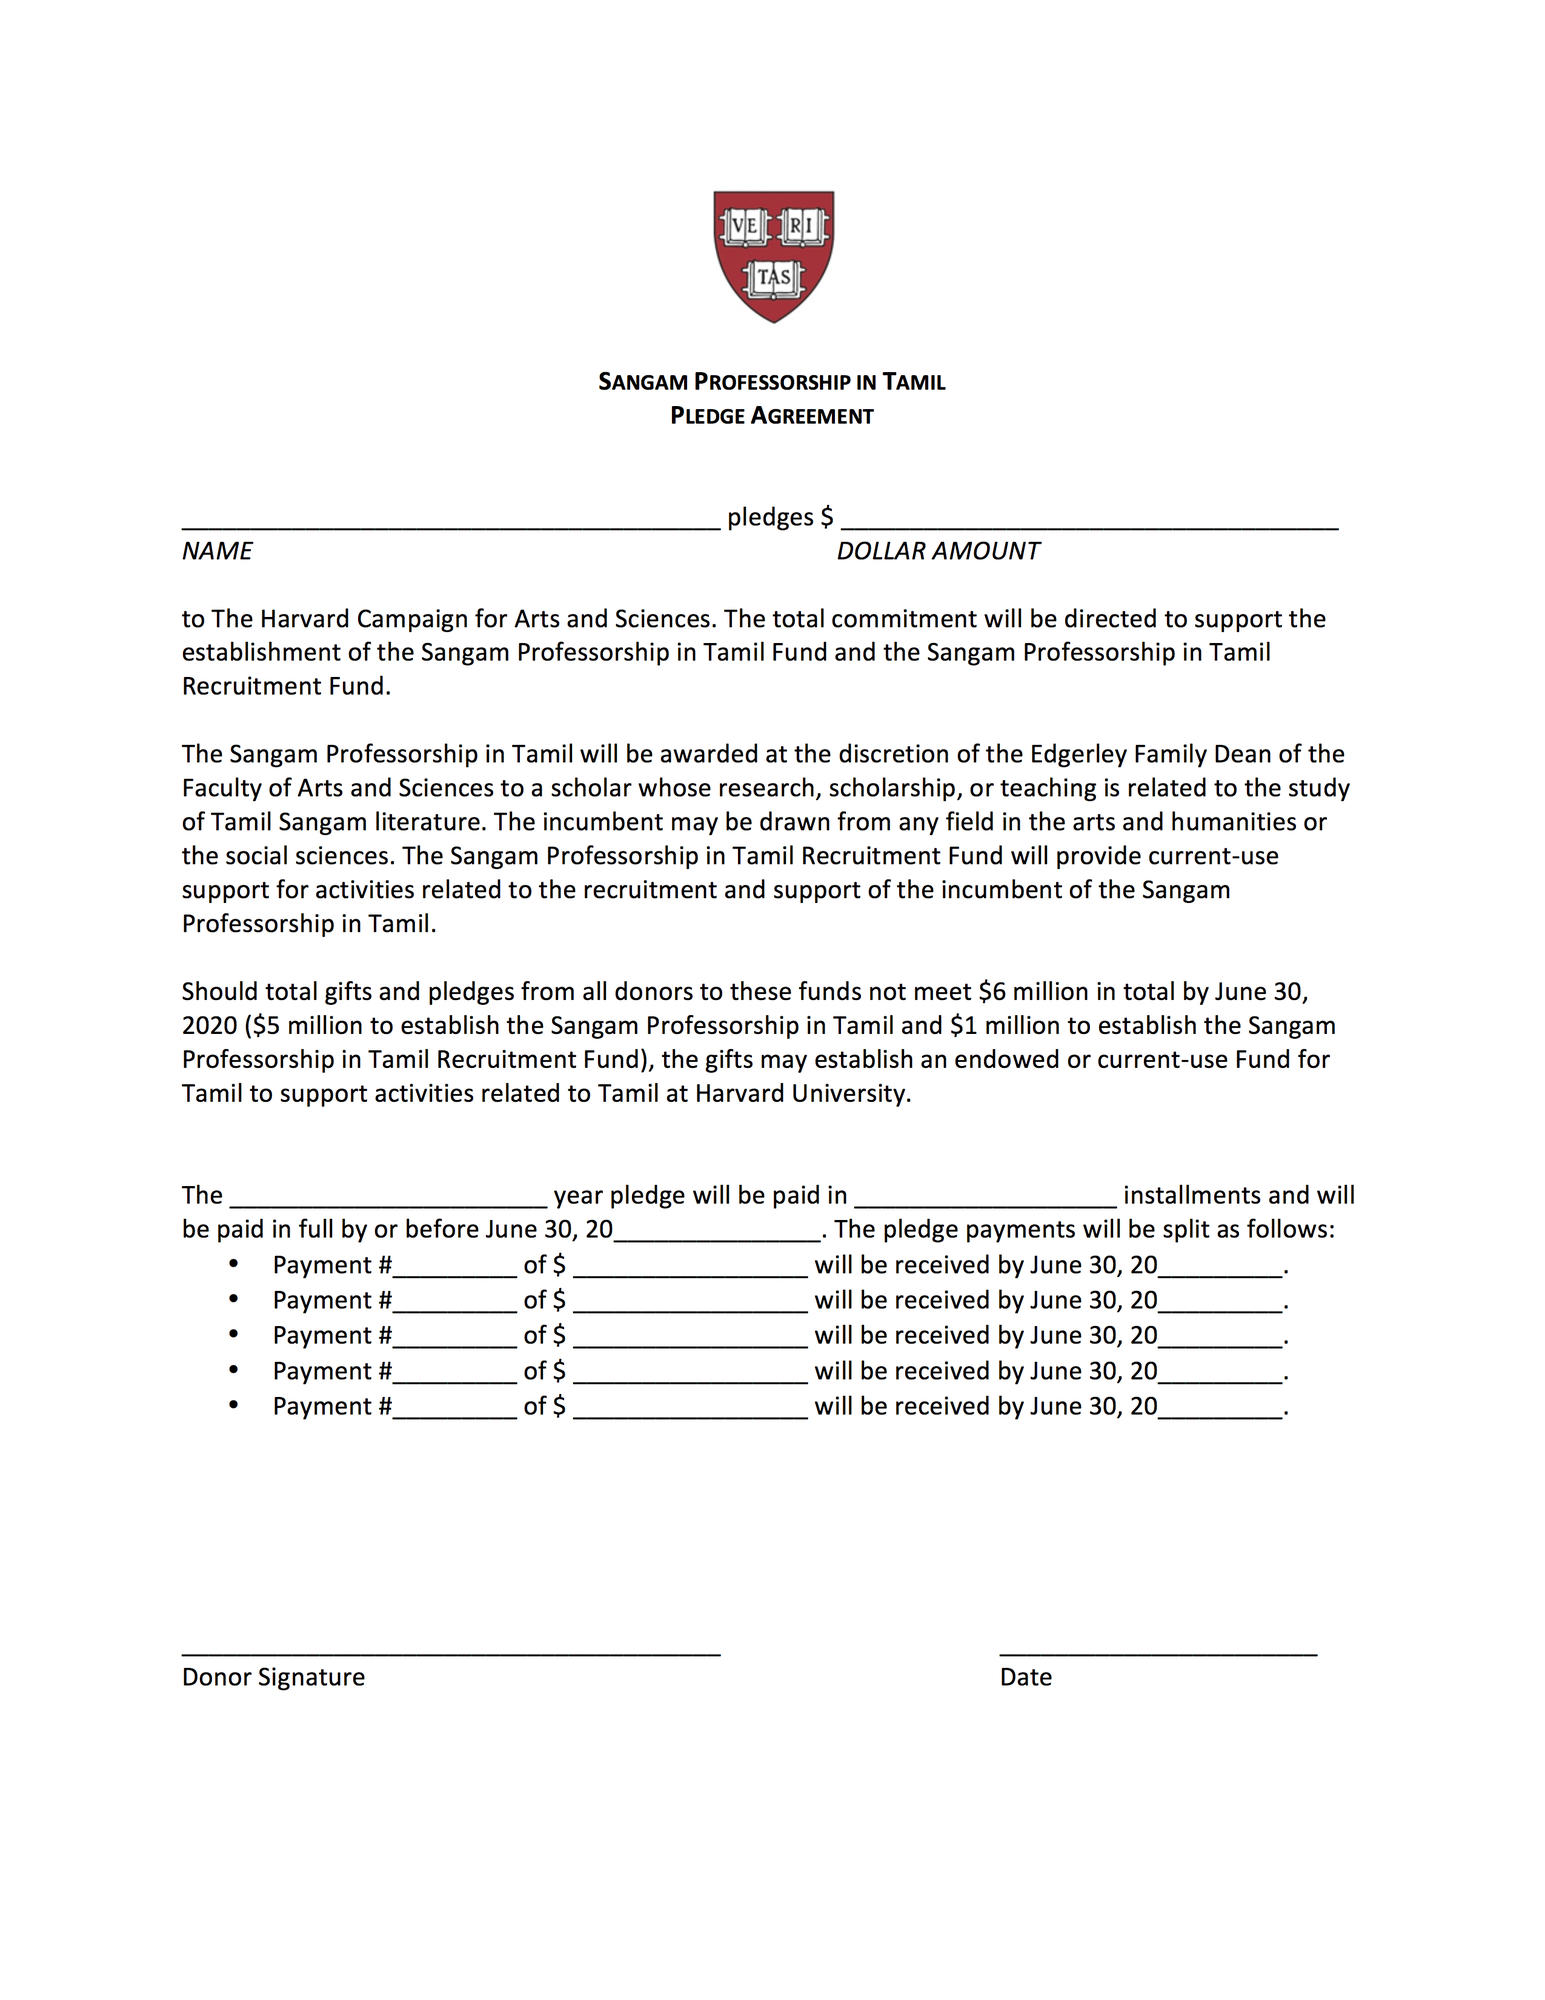 Pledge Agreement (please download and print this document)